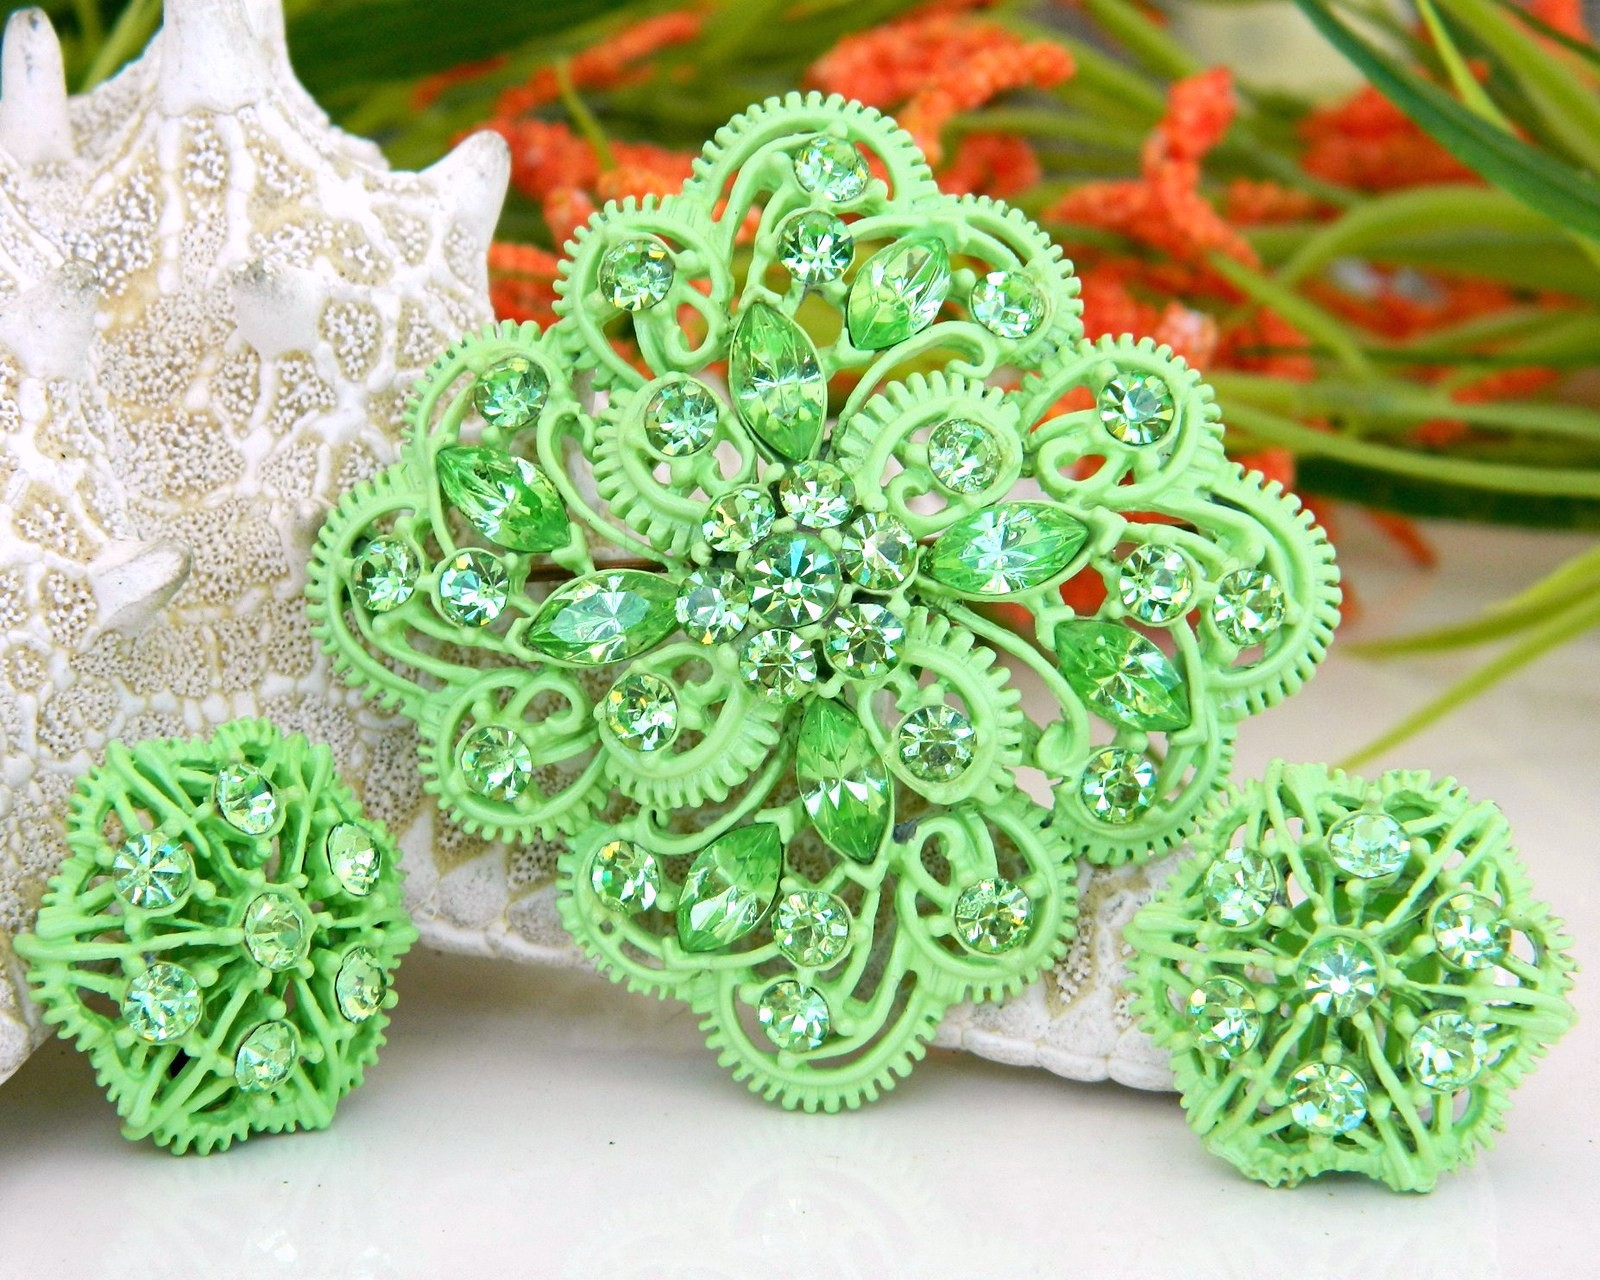 Primary image for Vintage Enamel Rhinestone Brooch Pin Earrings Demi Set Green